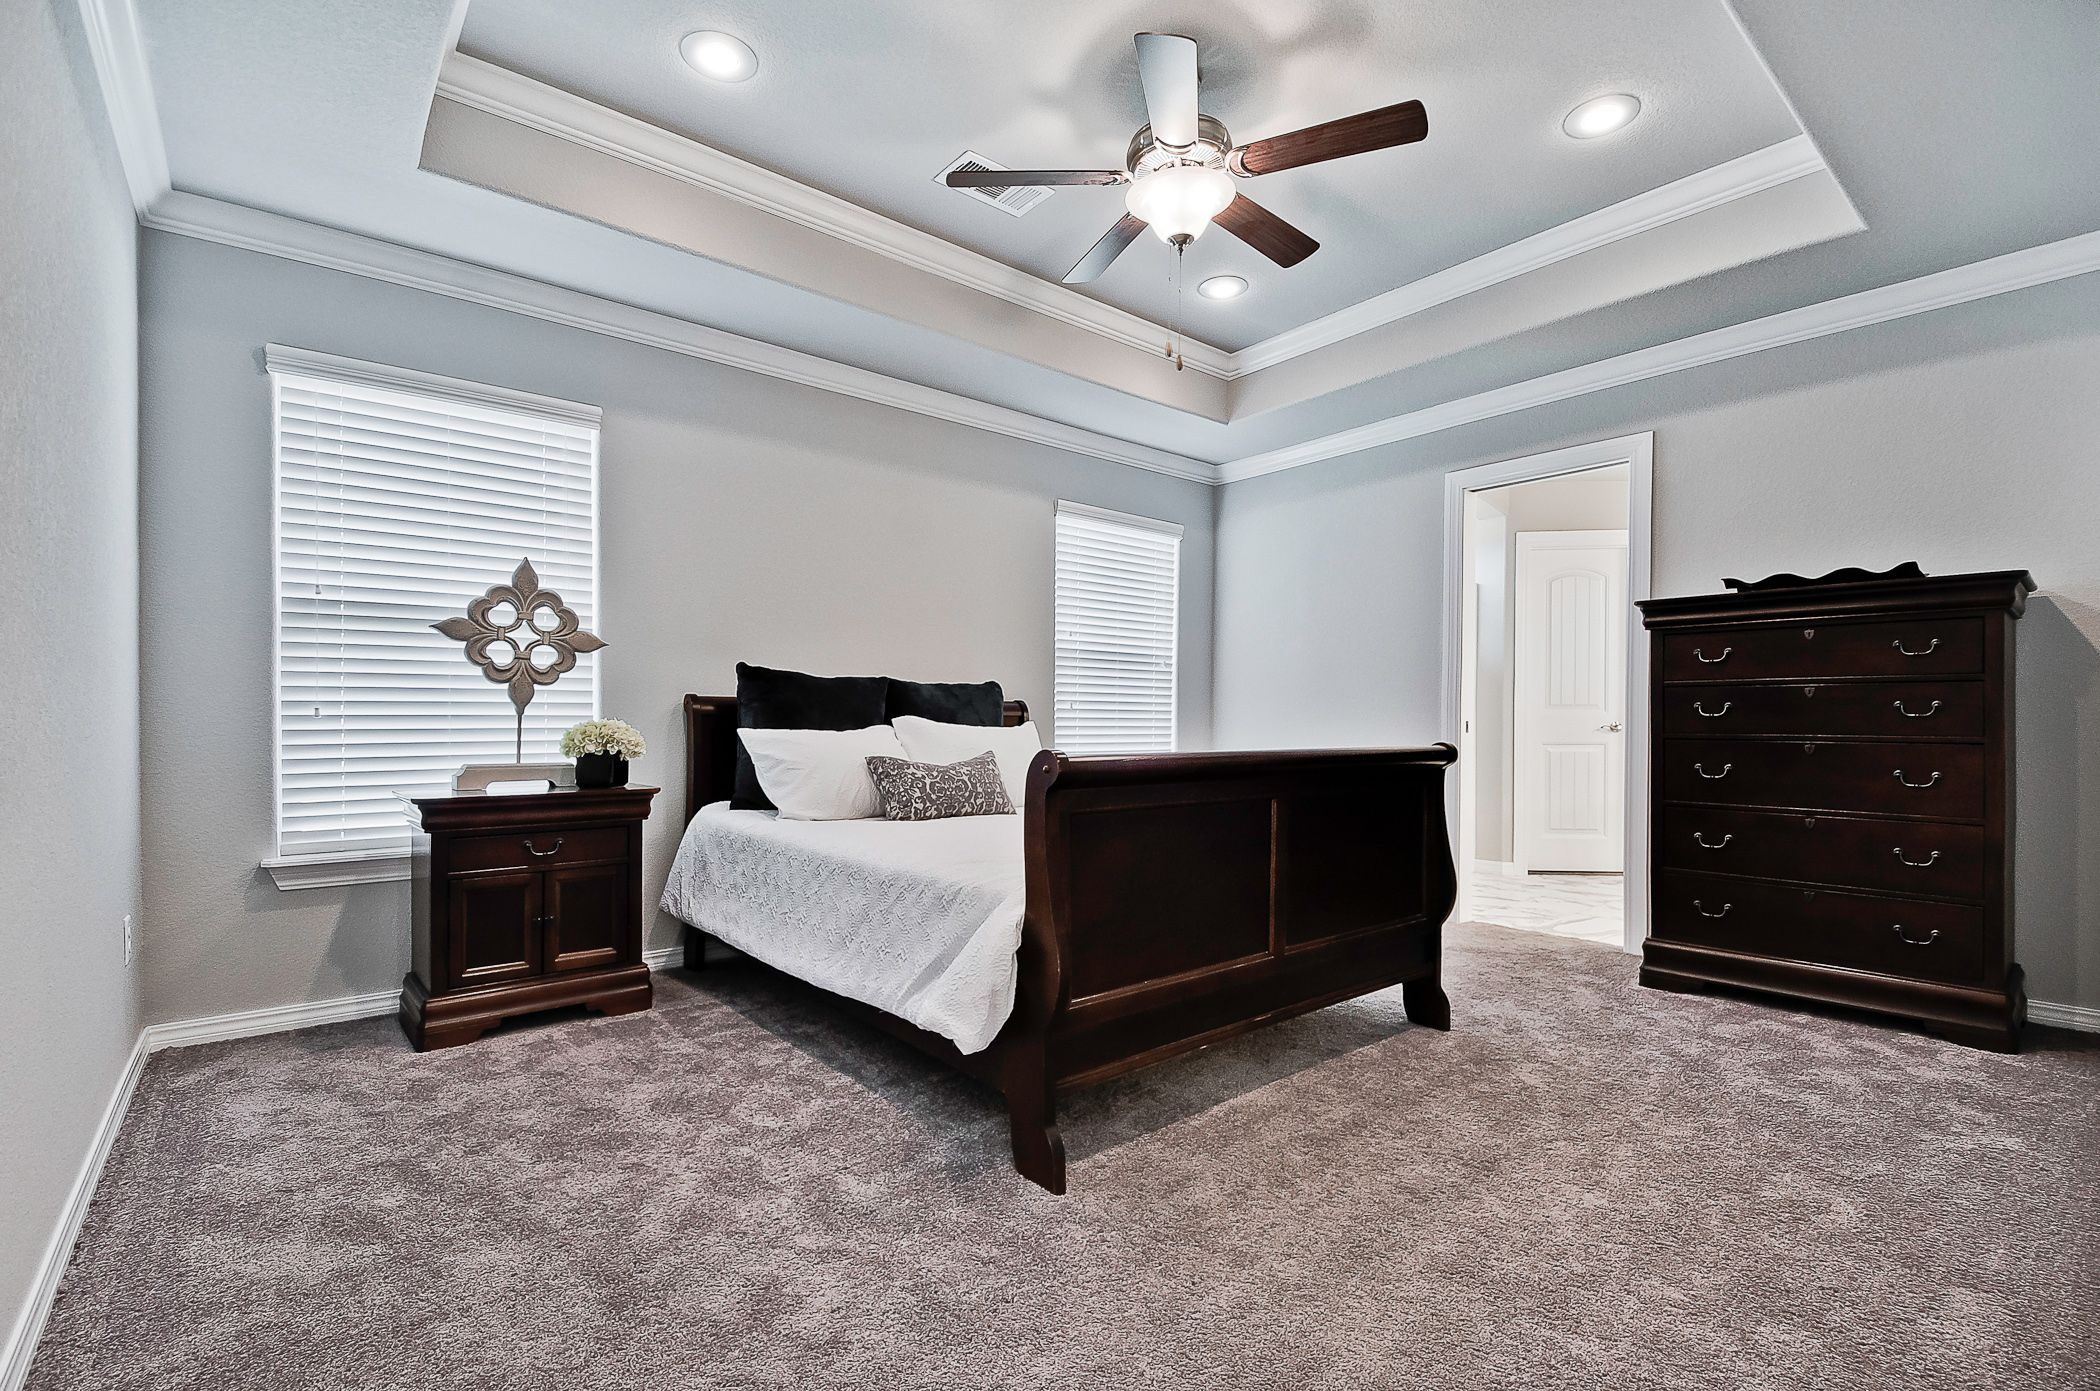 Bedroom featured in the 1463 By Riverwood Homes - Arkansas in Fayetteville, AR